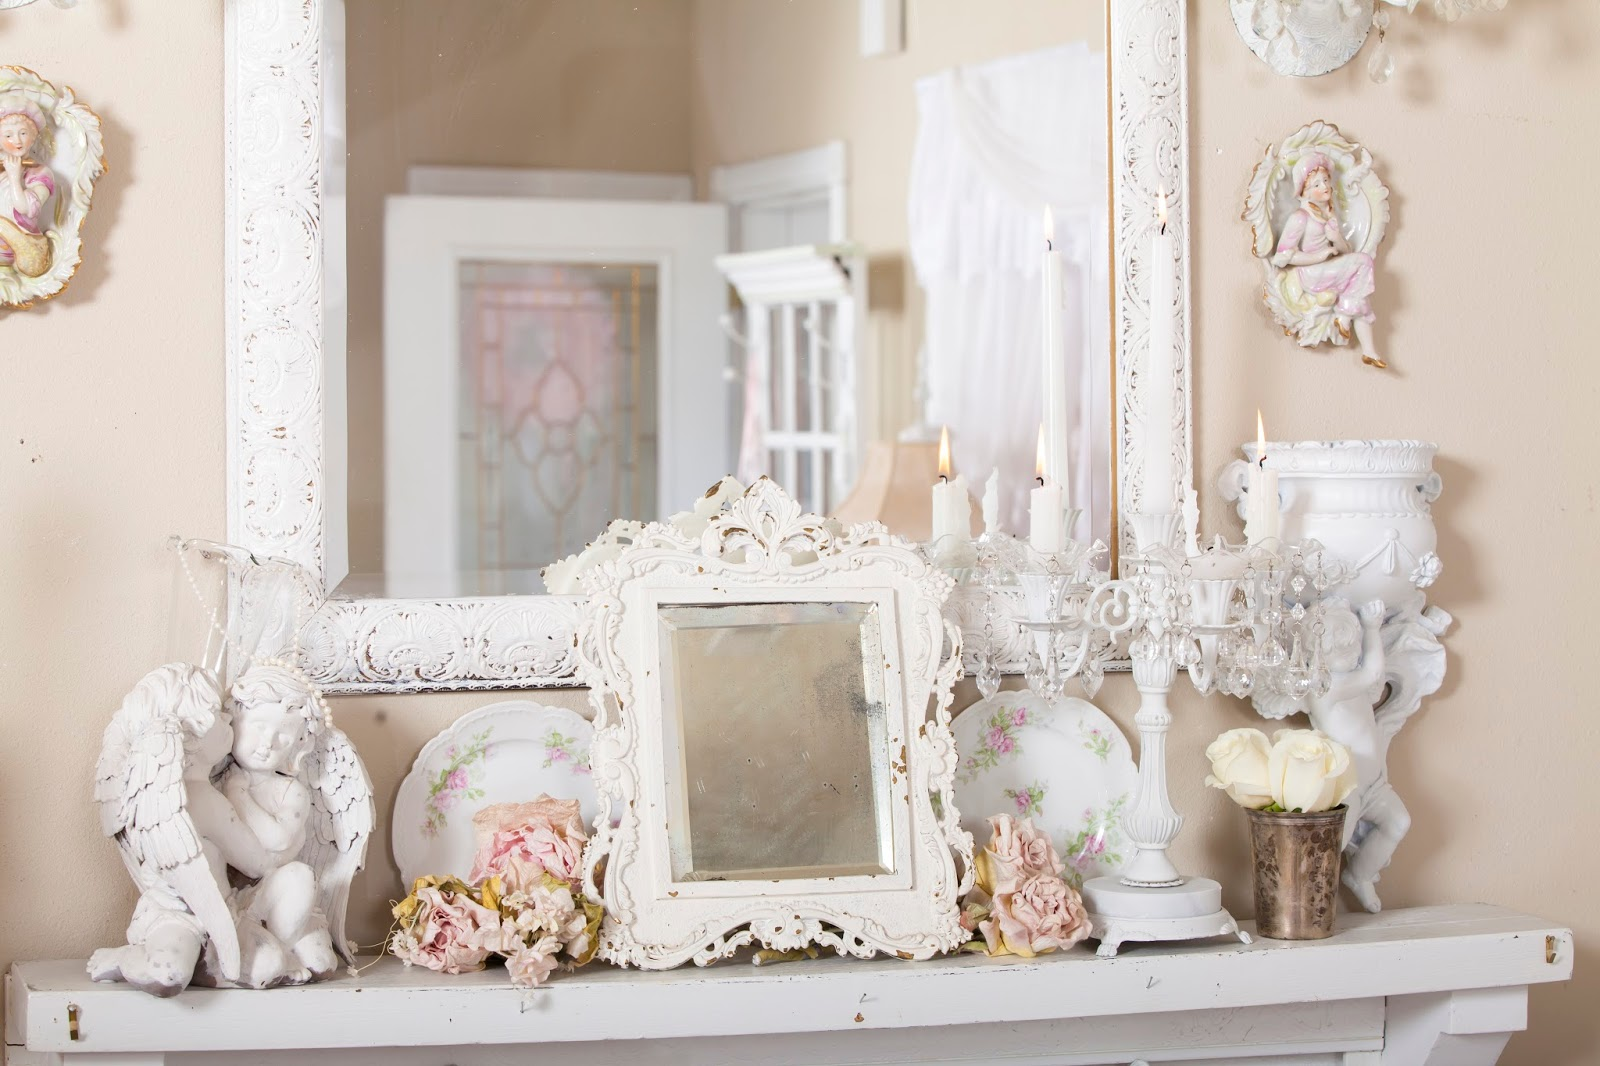 Olivia's Romantic Home: My Shabby Chic living room